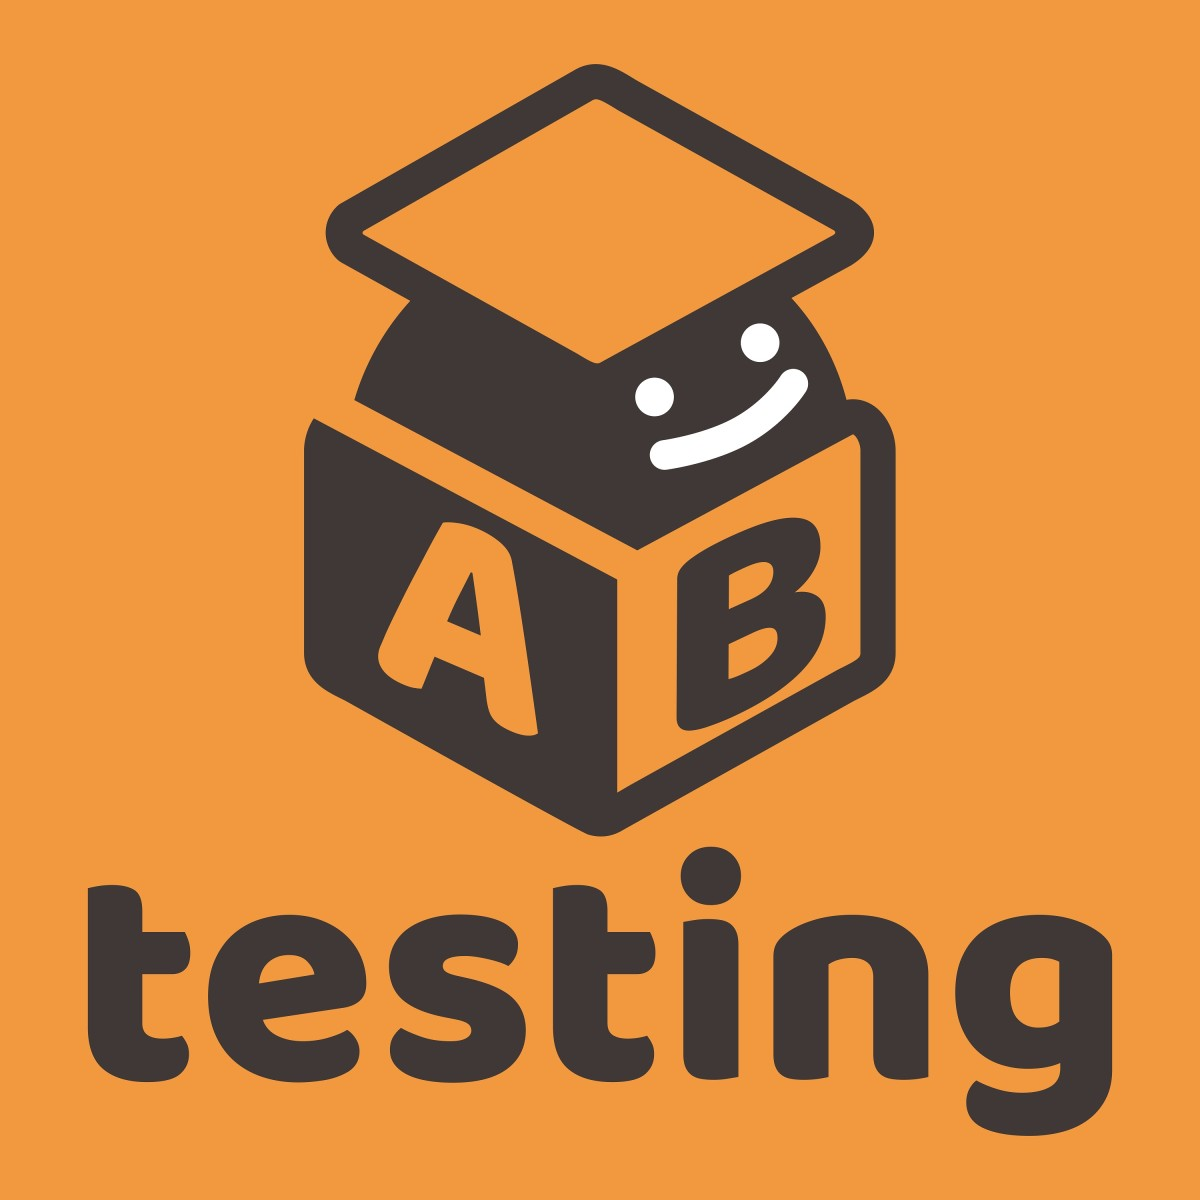 The logo for the long-running AB Testing podcast